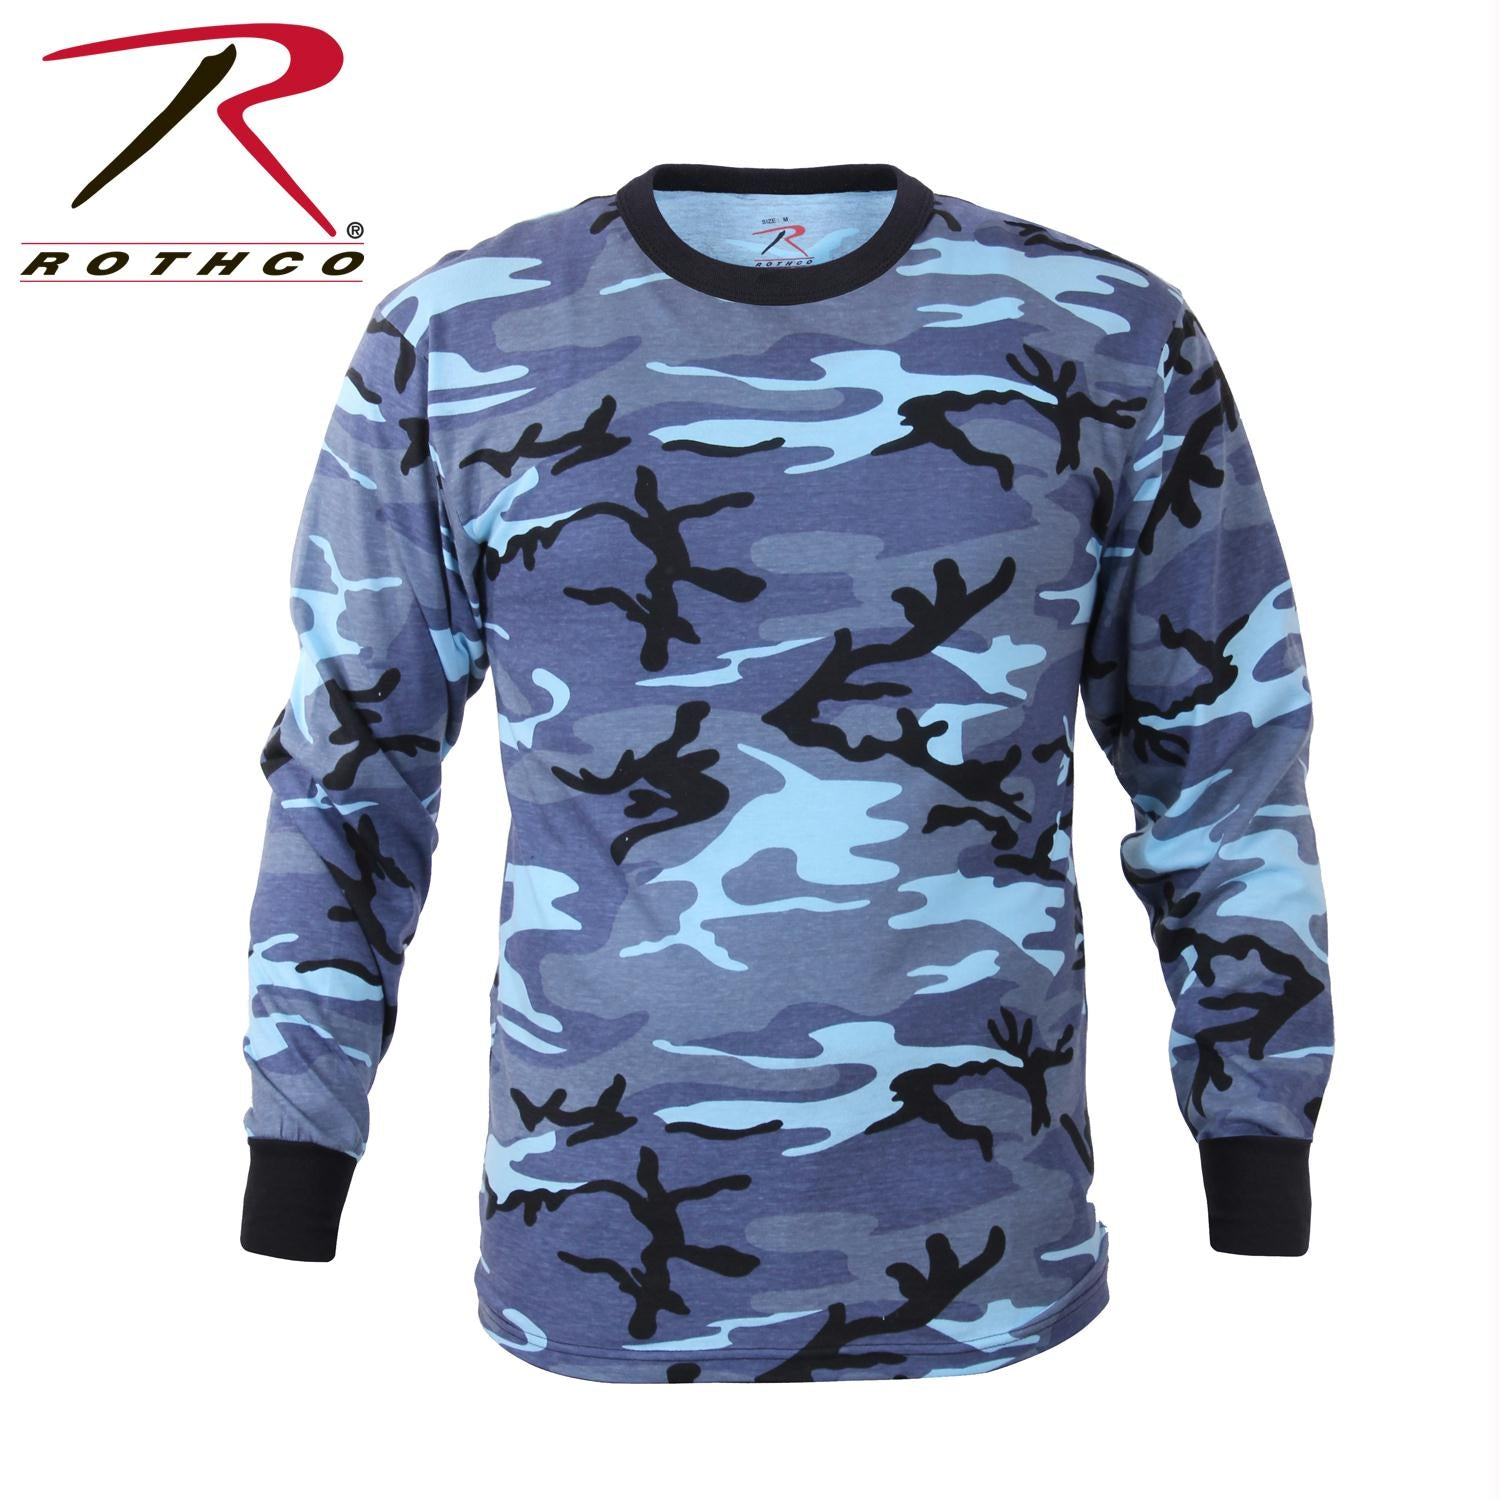 Rothco Long Sleeve Colored Camo T-Shirt - Sky Blue Camo / XL